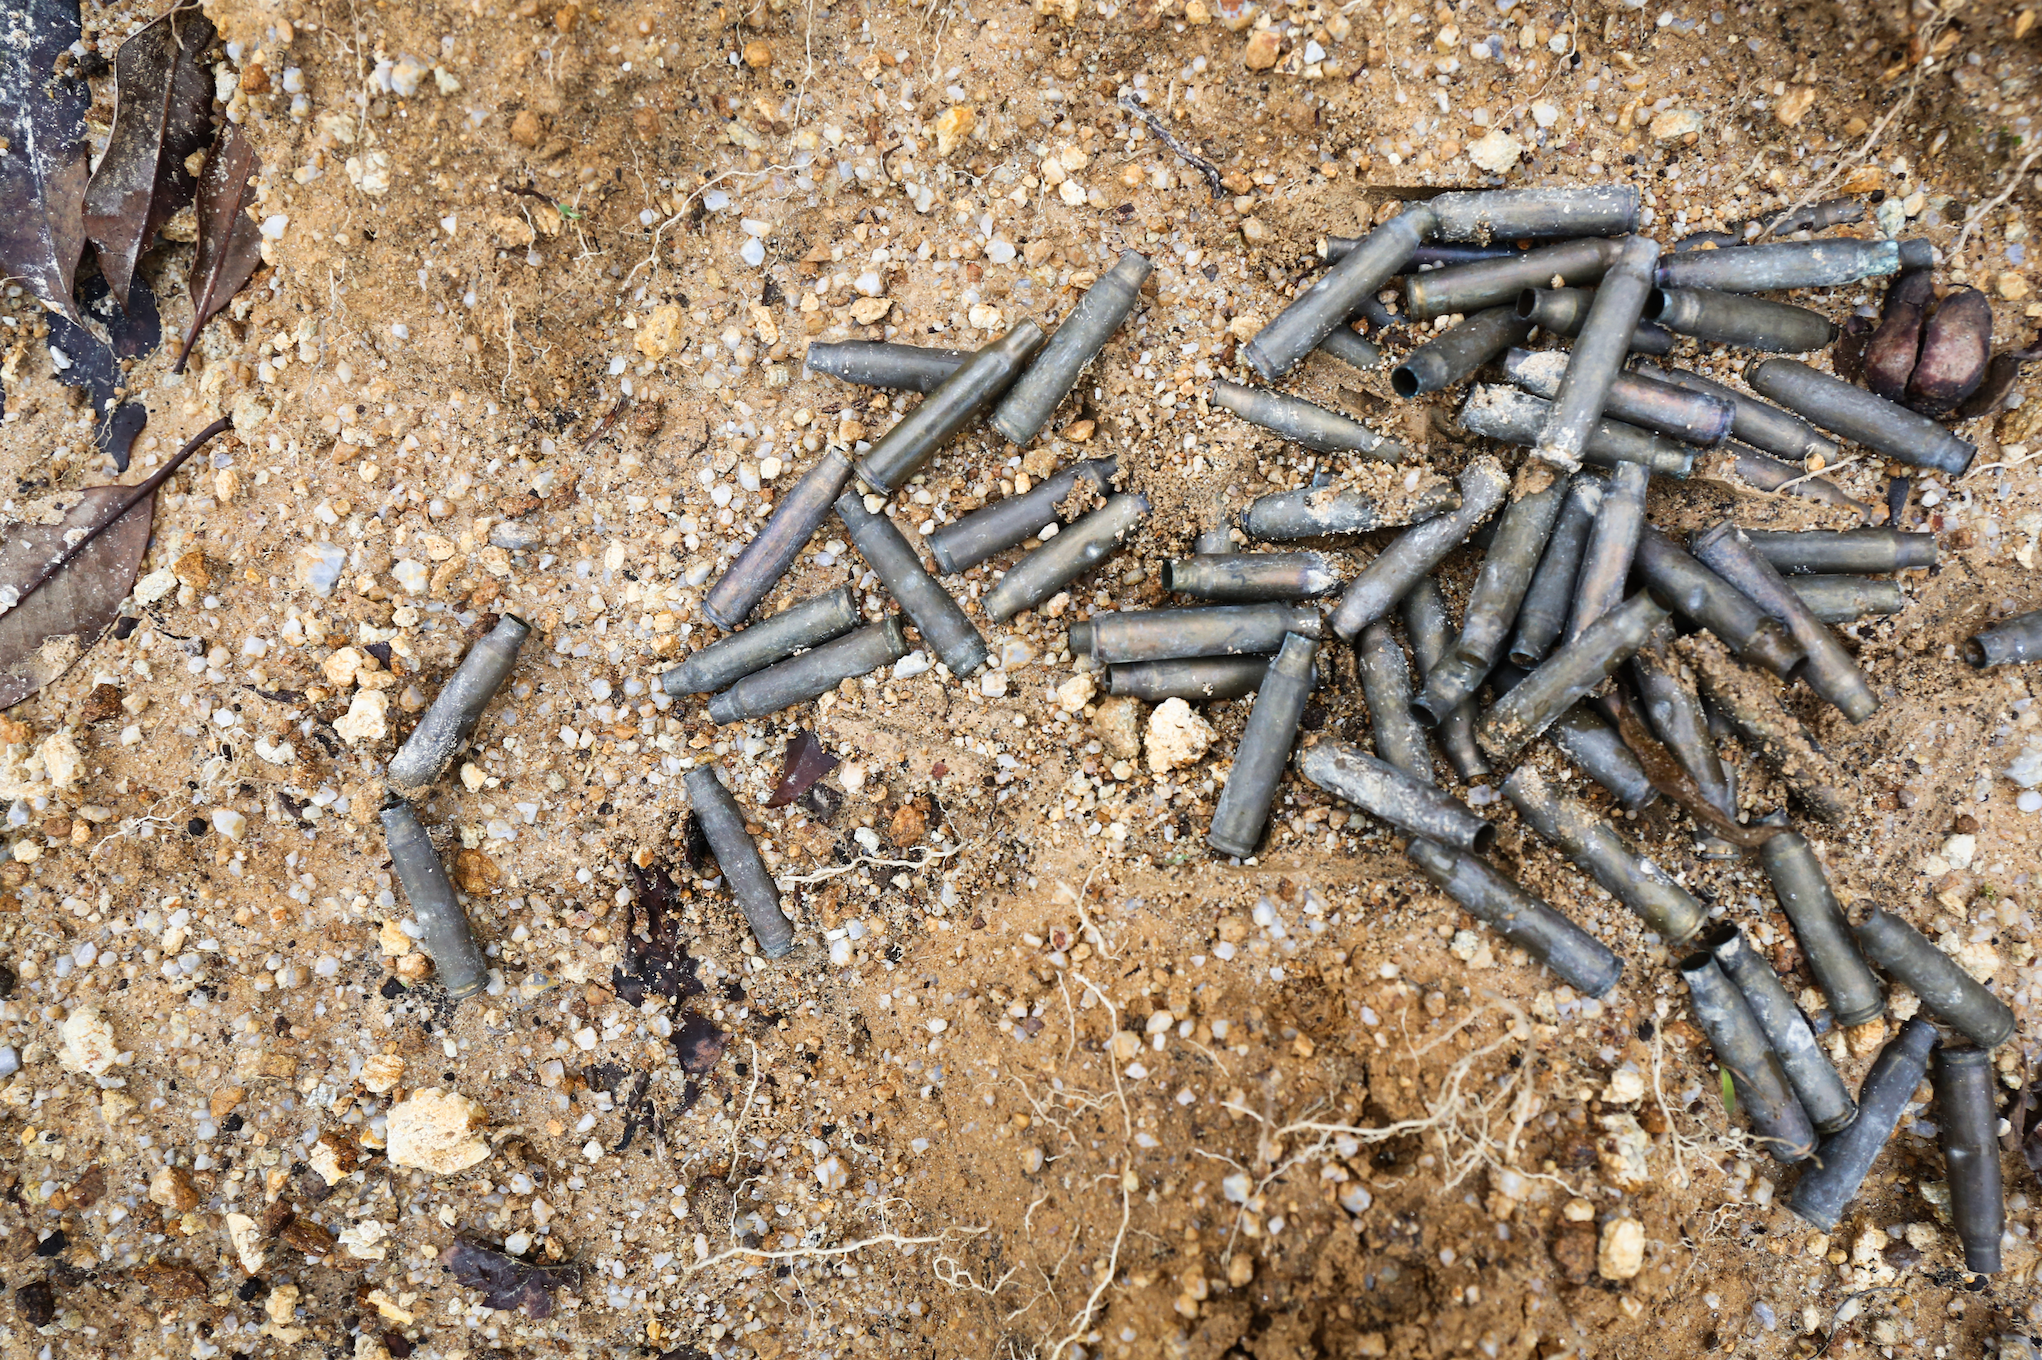 Bullets found at the scene of the attack. Markings on the back of the bullets led some human rights experts to believe they were produced at a Burmese military facility. August 2018.